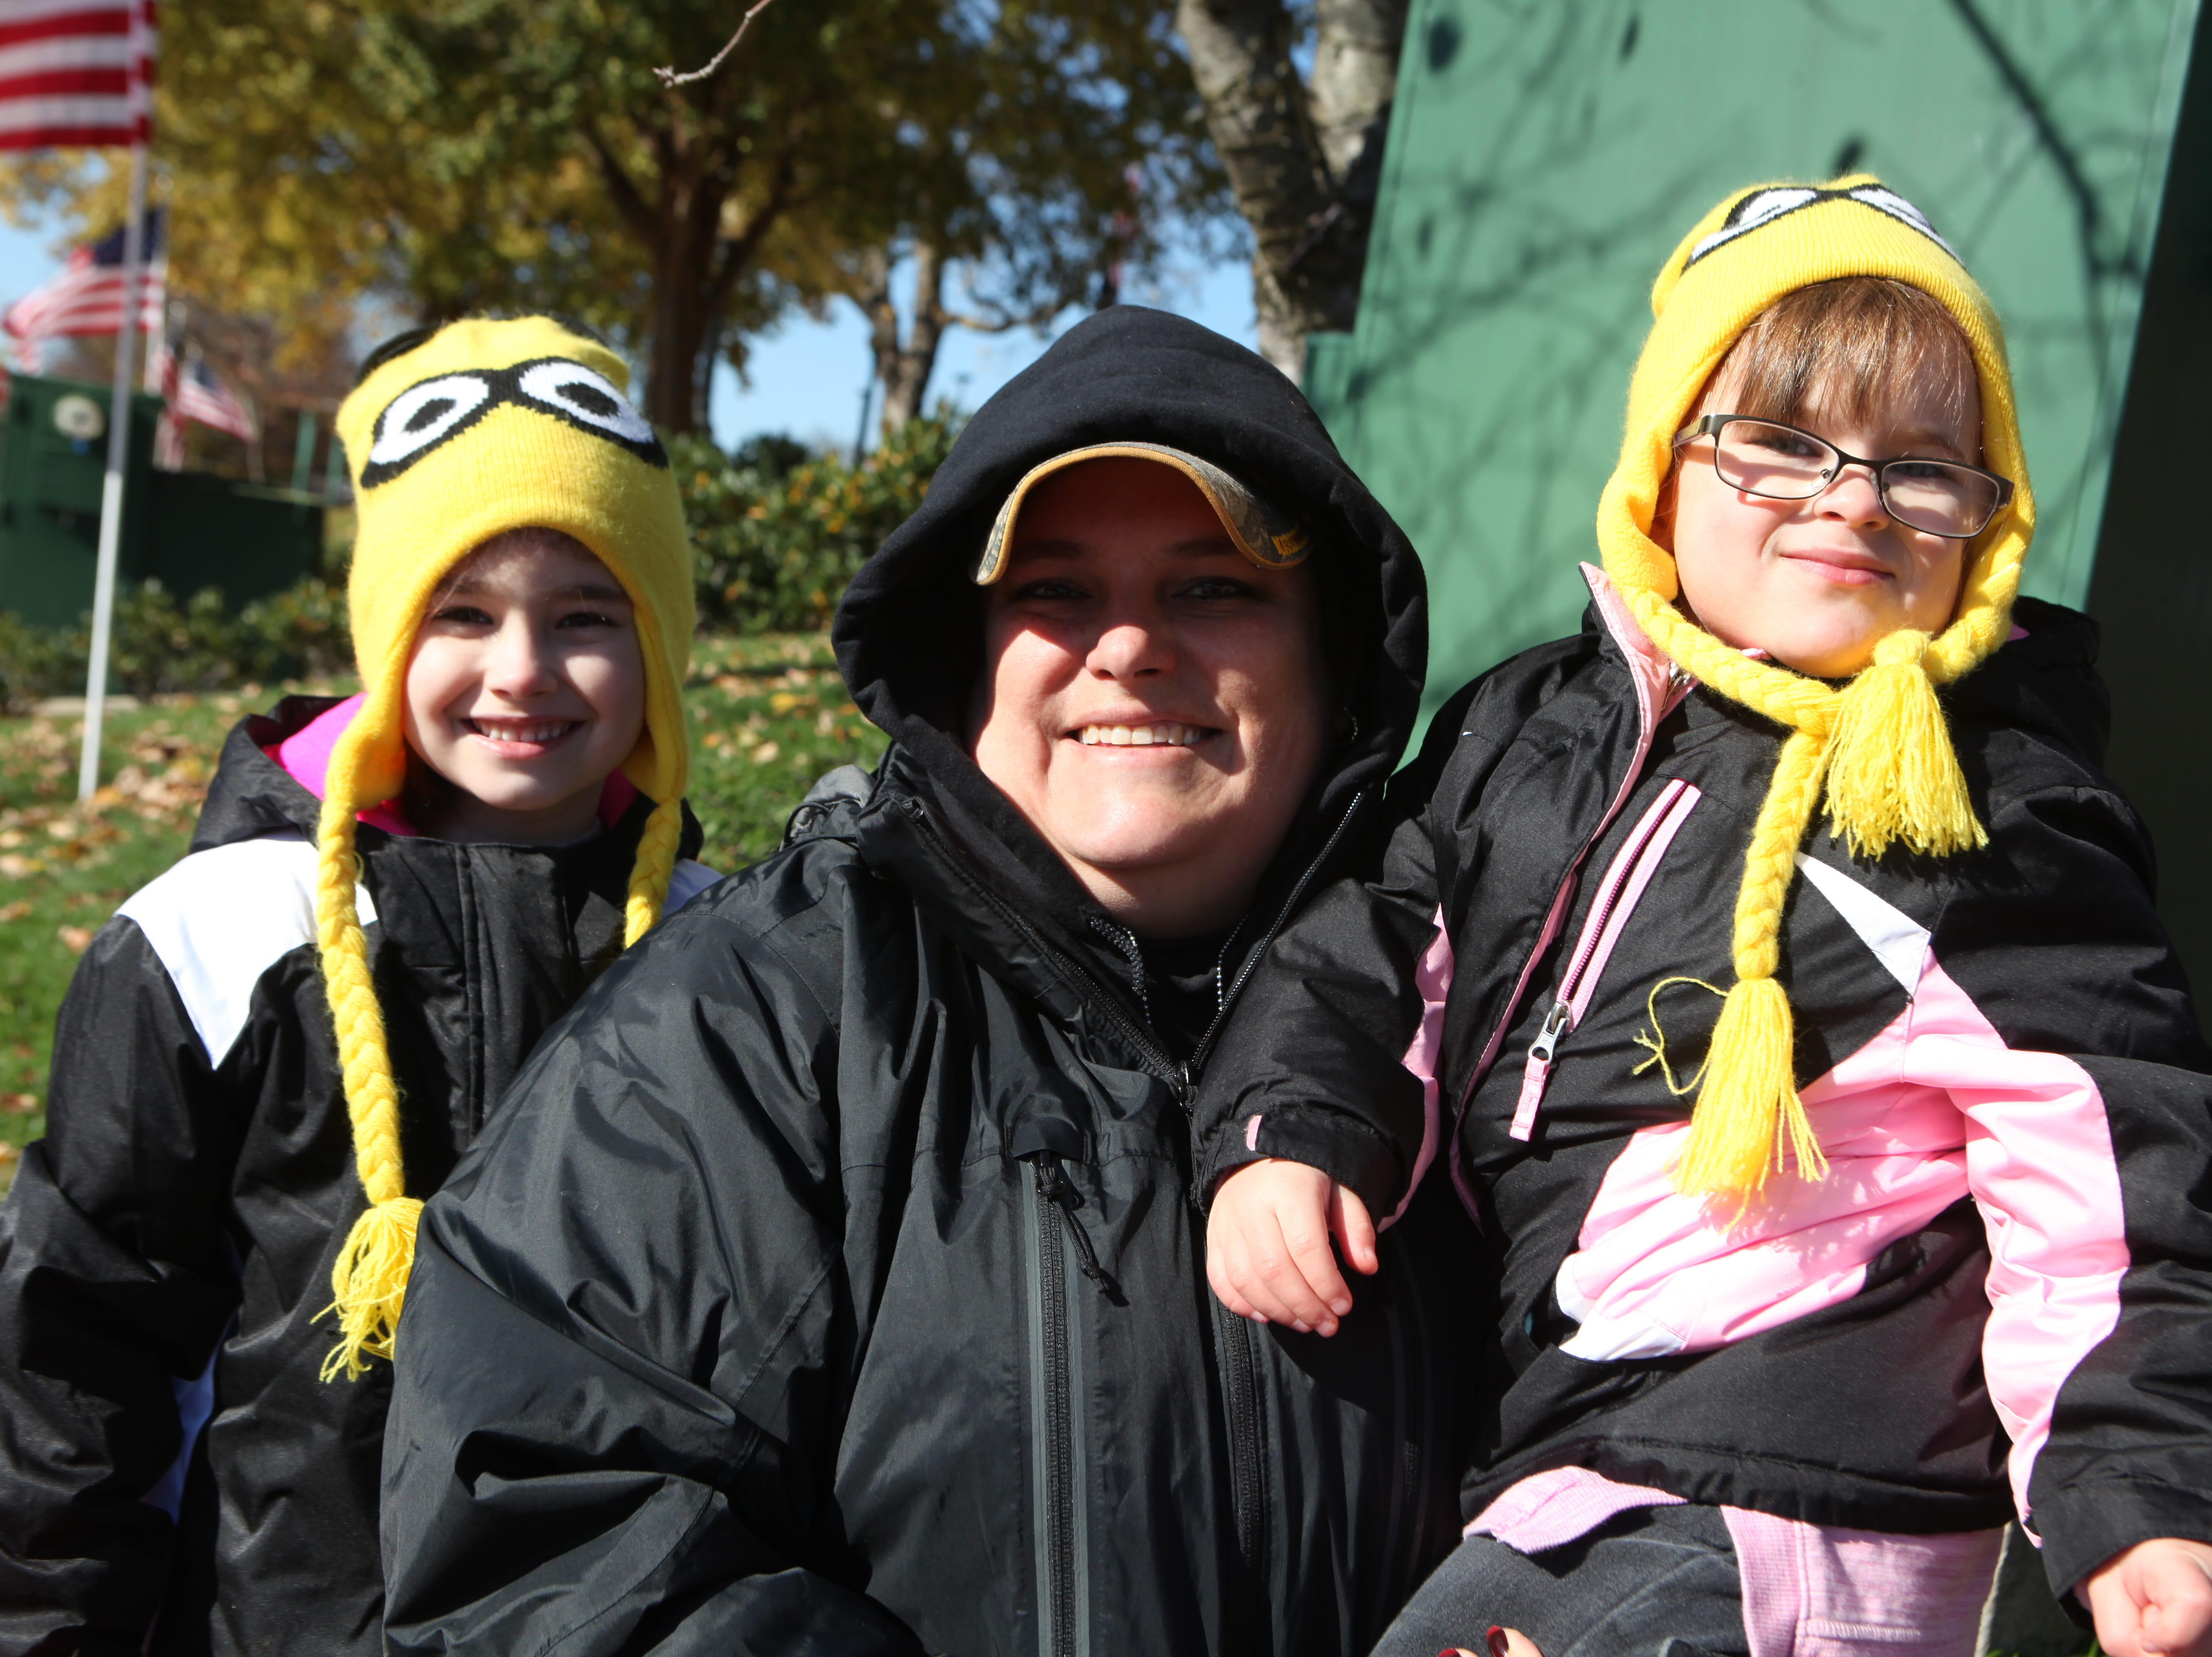 Taylor, Melissa and Emma Marsh at the Veterans Day Parade in Clarksville on Saturday, Nov. 10, 2018.